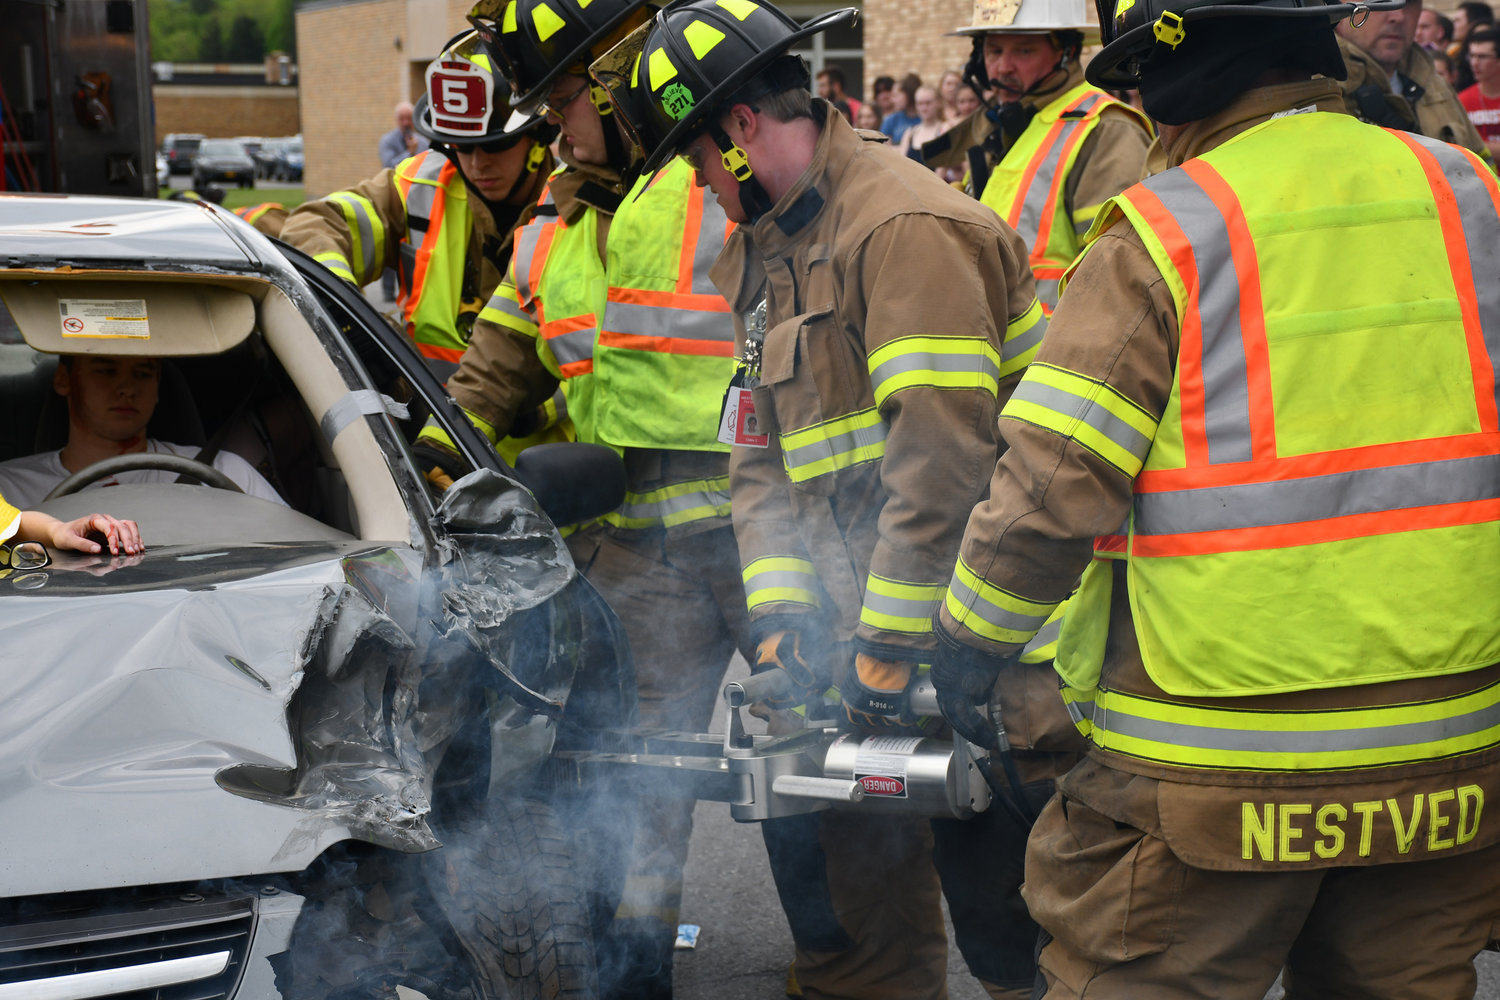 "PEEL IT BACK — Westmoreland firefighters stage a mock accident rescue on Thursday, May 23 at Westmoreland Senior High School to demonstrate to students the possible consequences of distracted driving during this prom and graduation season. ""It's up to you to make good choices,"" said Waylan Wilczek, 1st captain of the Westmoreland Fire Department."